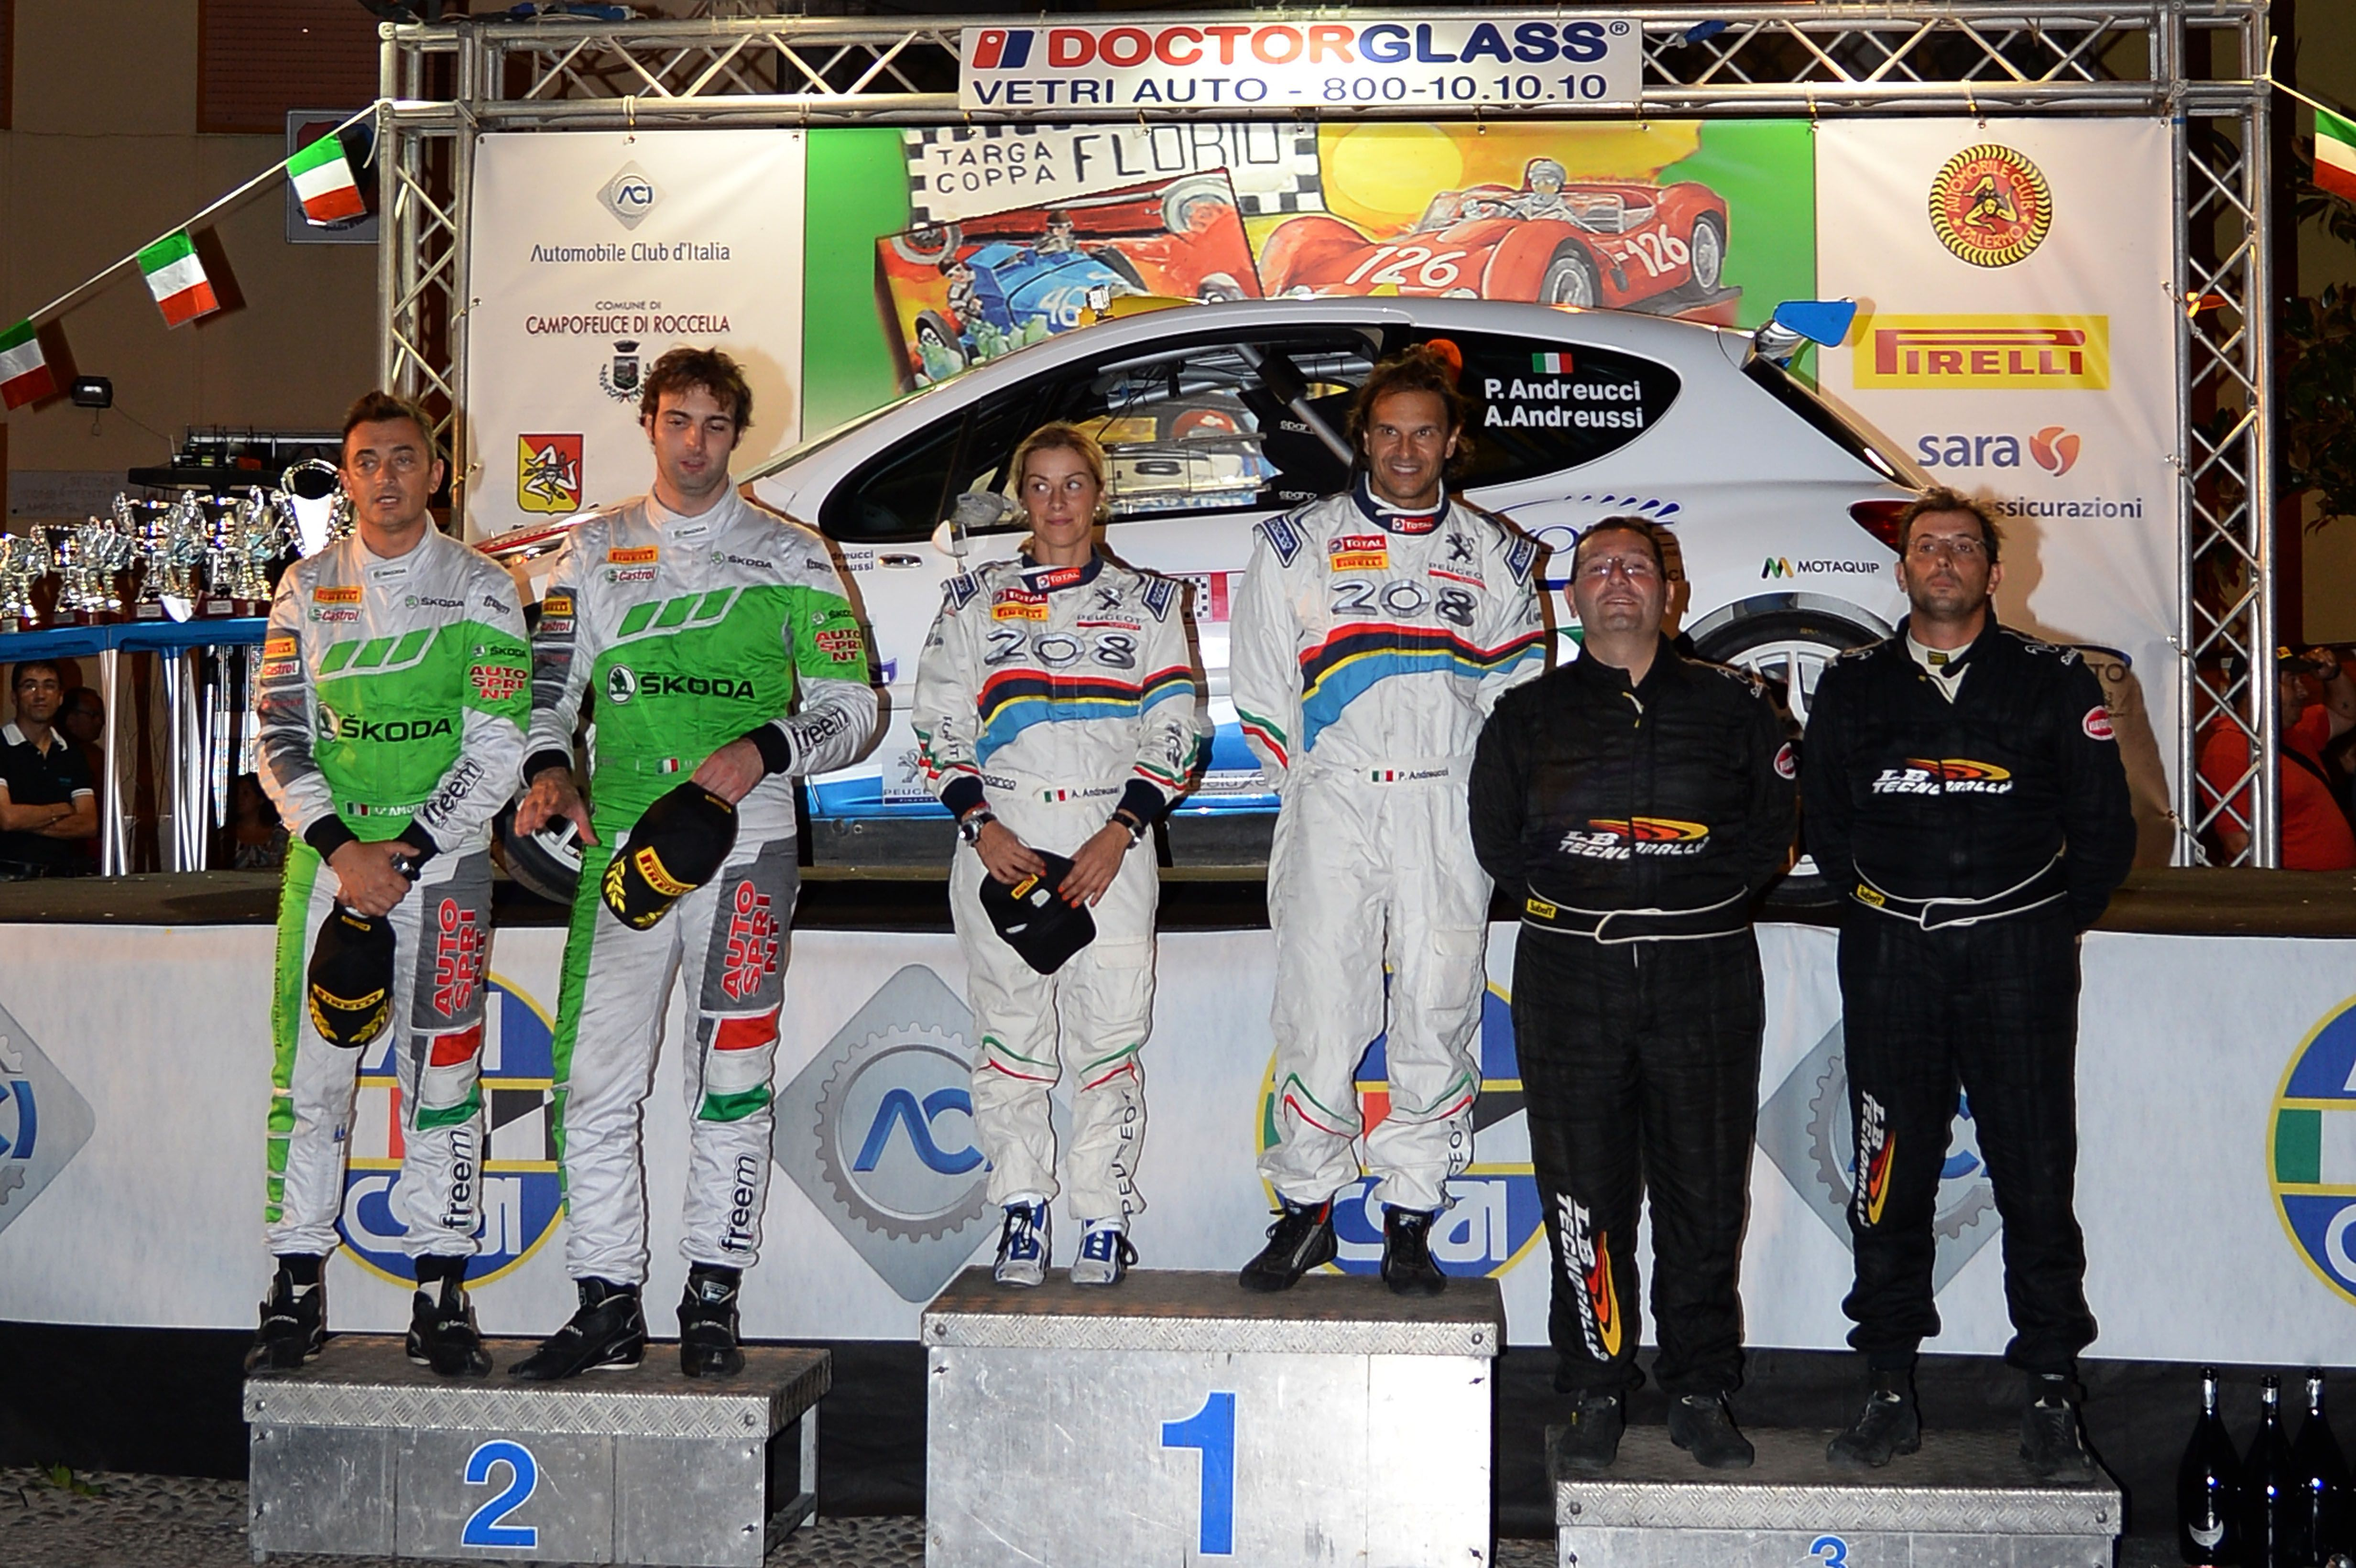 Podium: Paolo Andreucci, Anna Andreussi (Peugeot 207 S2000 S2000 #2, Racing Lions), race winner, Umberto Scandola, Guido D Amore (Skoda Fabia S2000 S2000 #1,Car Racing) 2nd position and , Salvatore Riolo, Massimiliano Alduina (Peugeot 207 S2000 S2000 #4, Ateneo) 3rd position